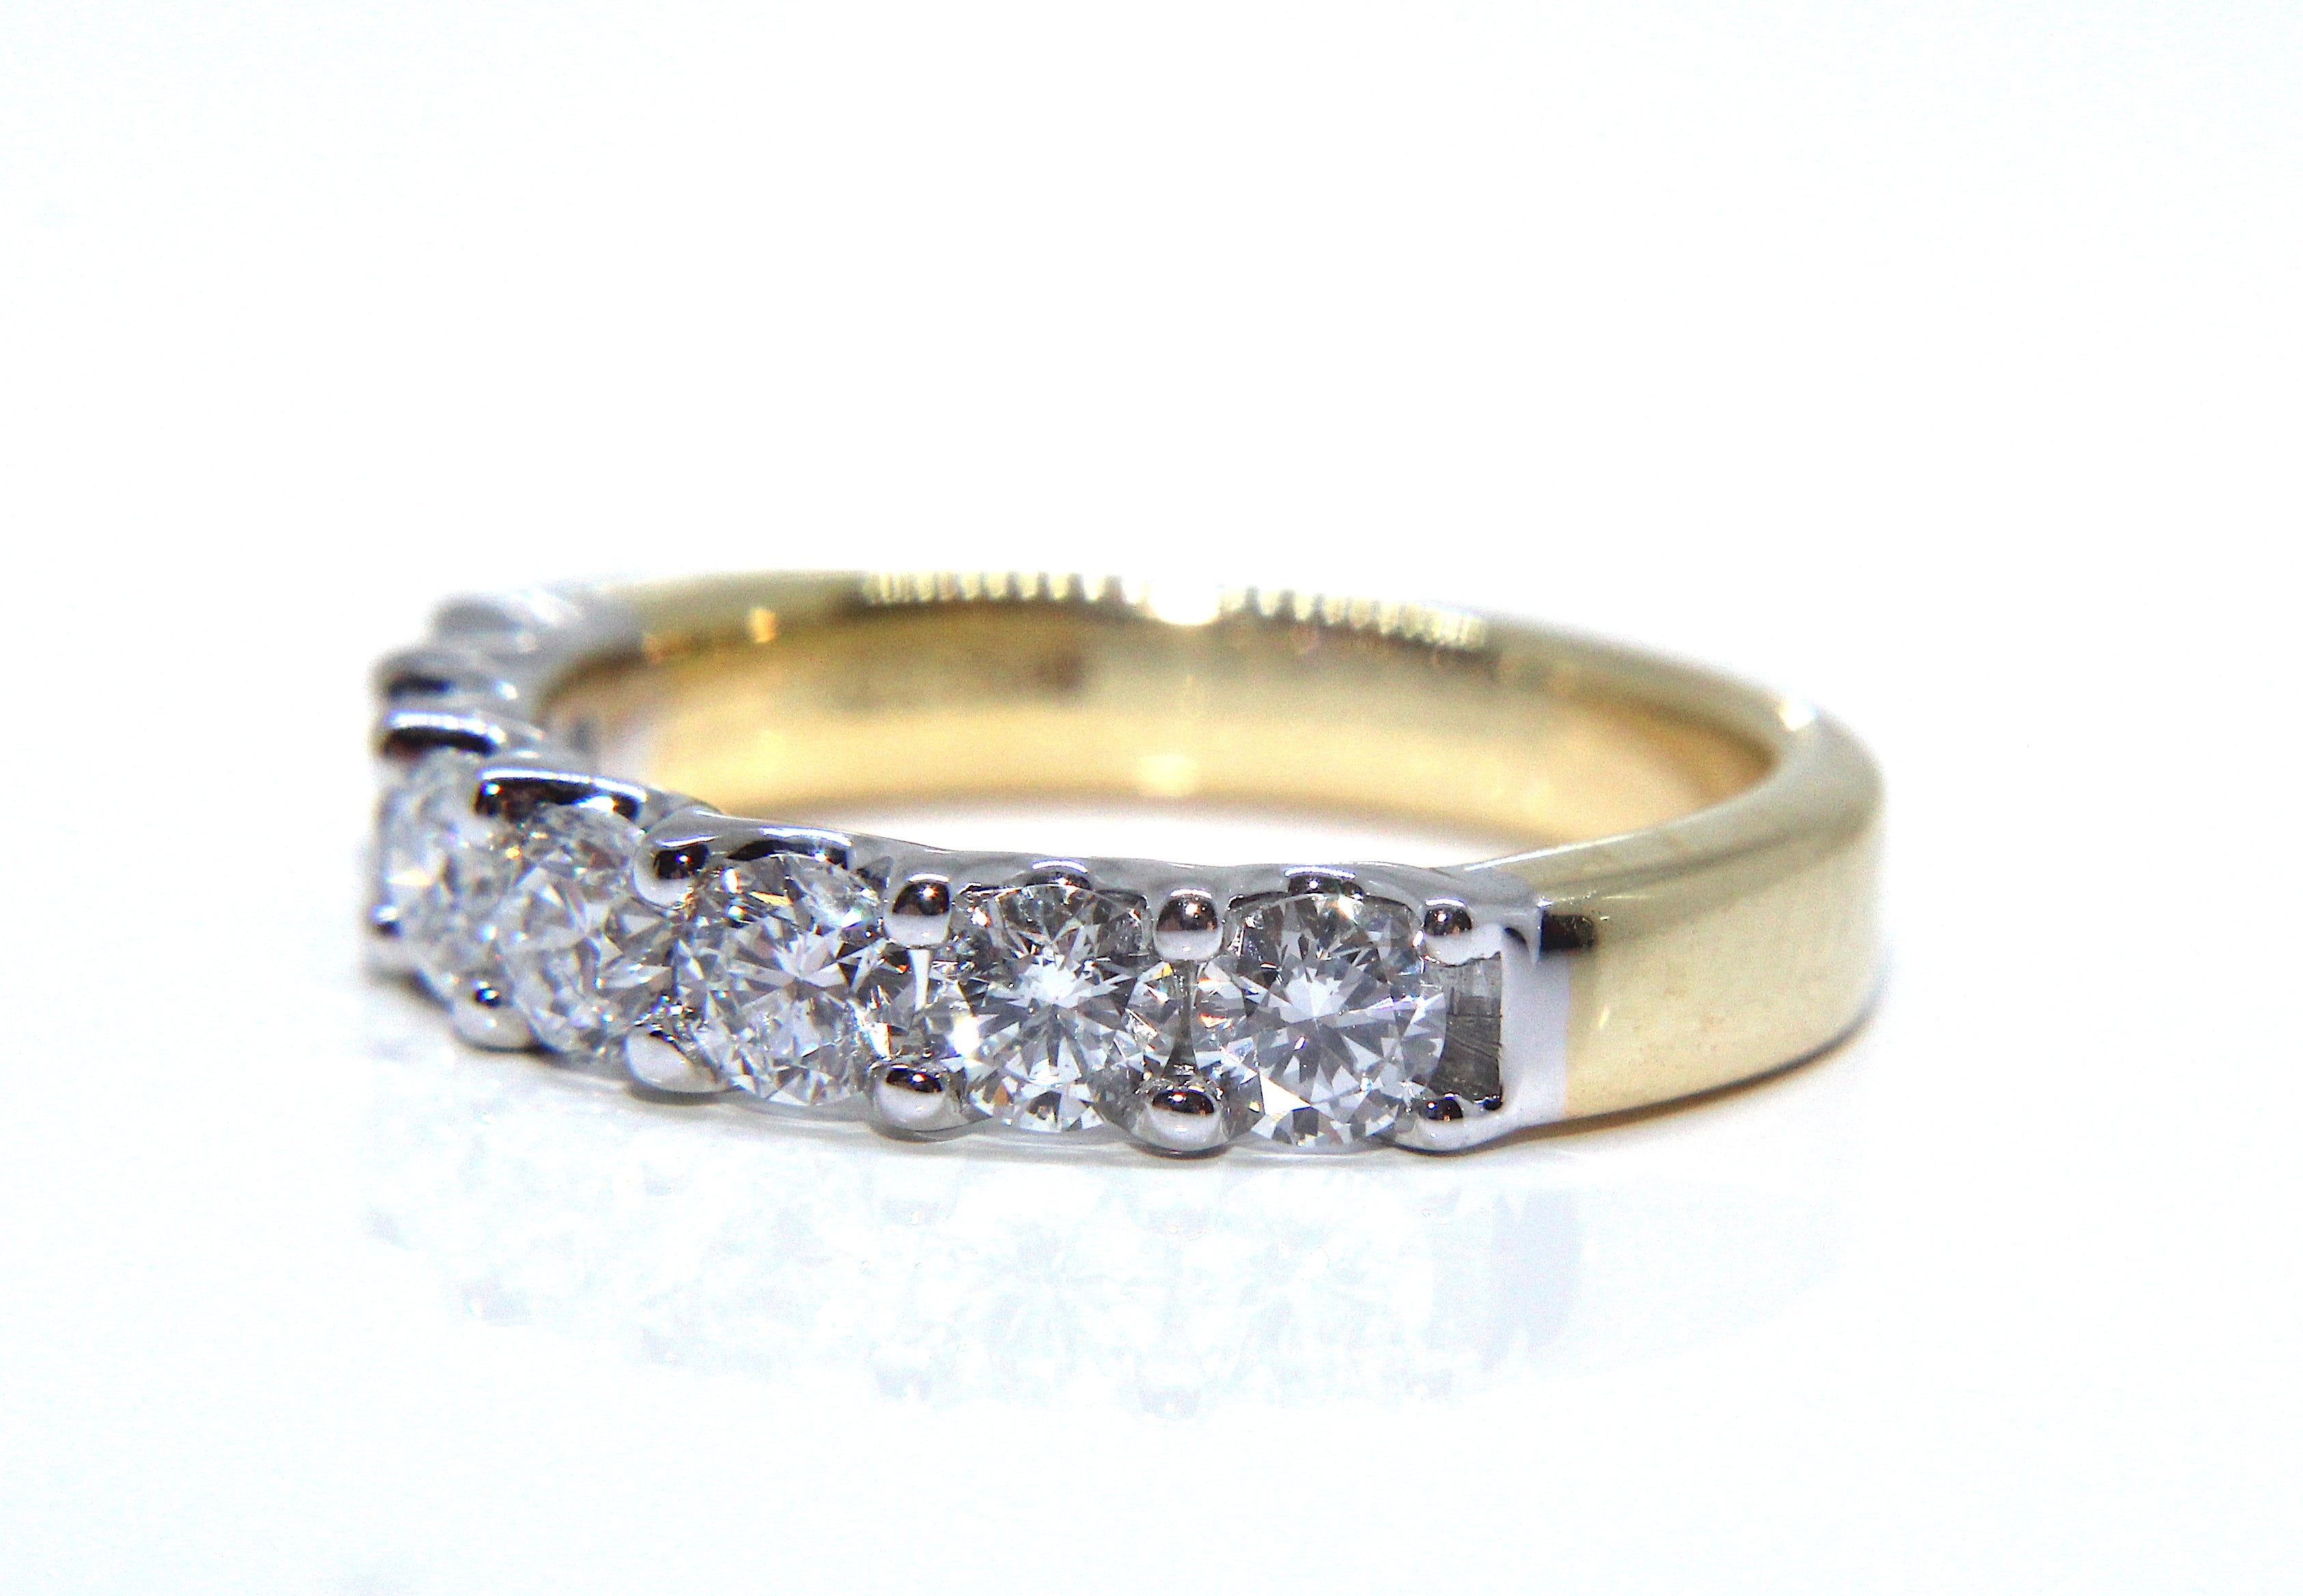 bands wedding diamond engraved white in gold ring with band designs hand side eternity top